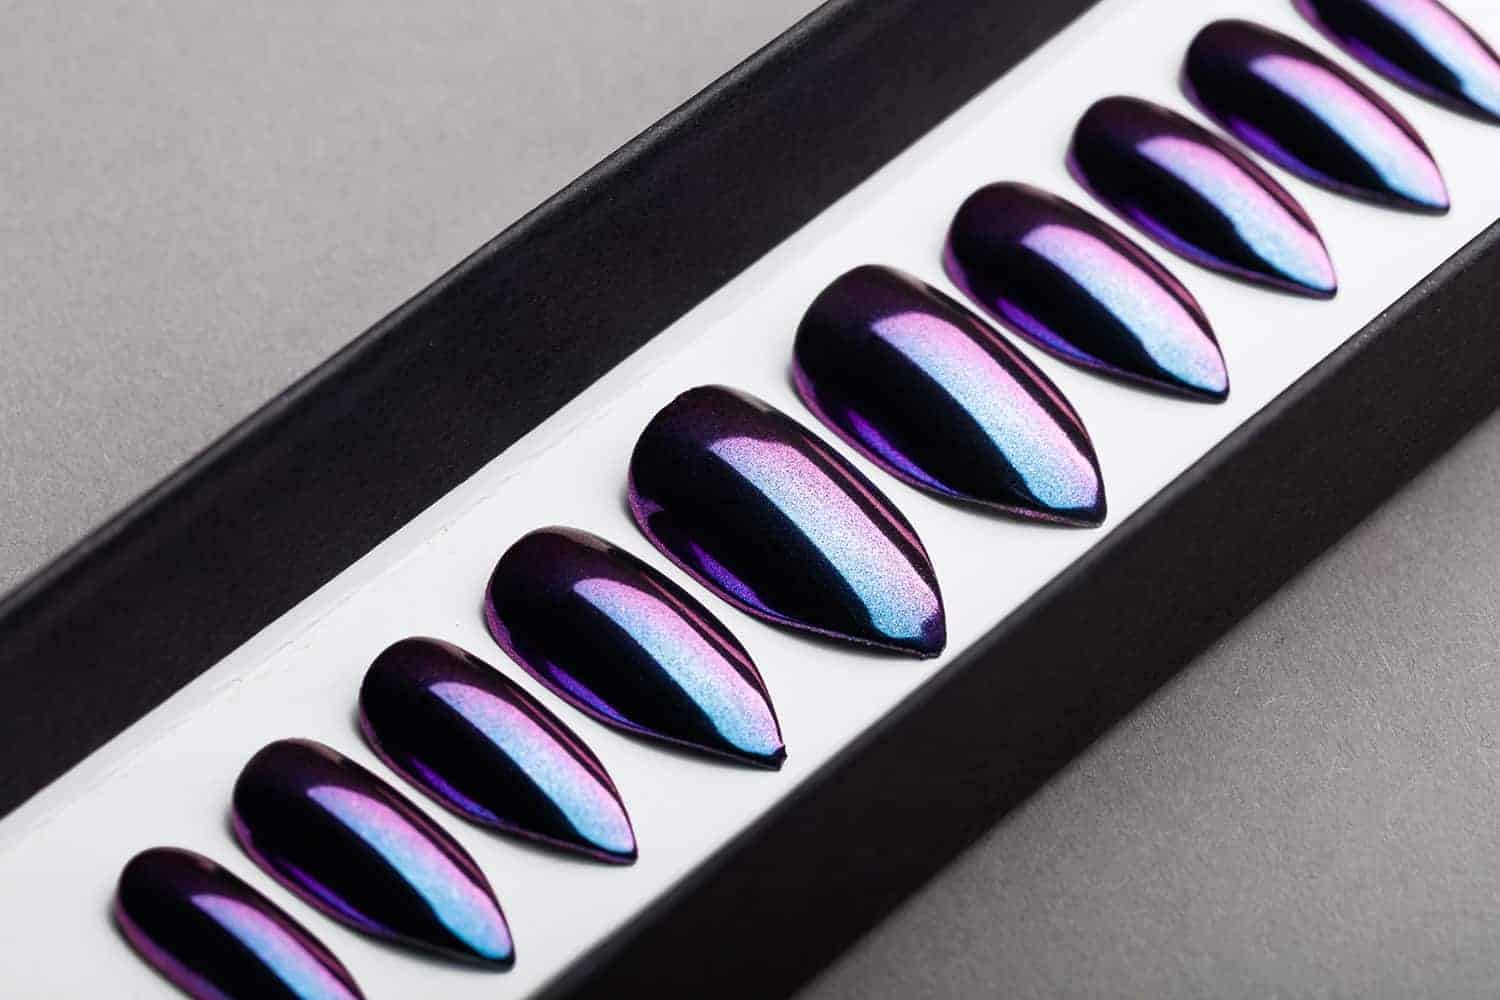 Purple and Blue Mirror Press on Nails | Nude Nails | Handpainted Nail Art | Fake Nails | False Nails | Unicorn Nails | Chrome nails